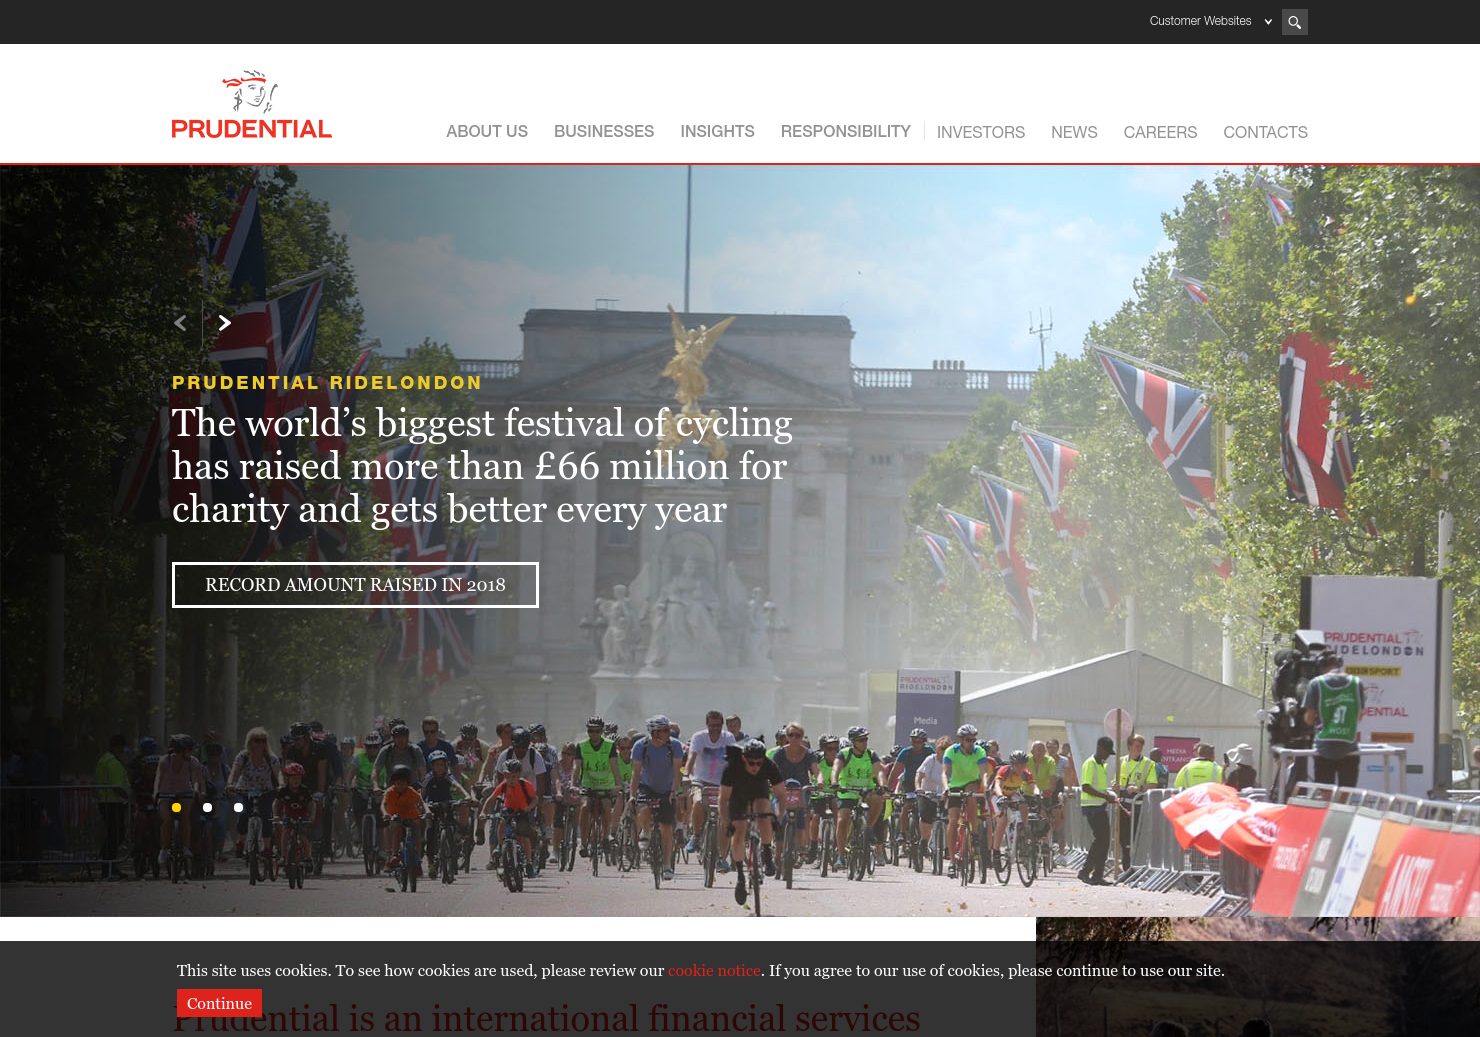 Prudential Home Page